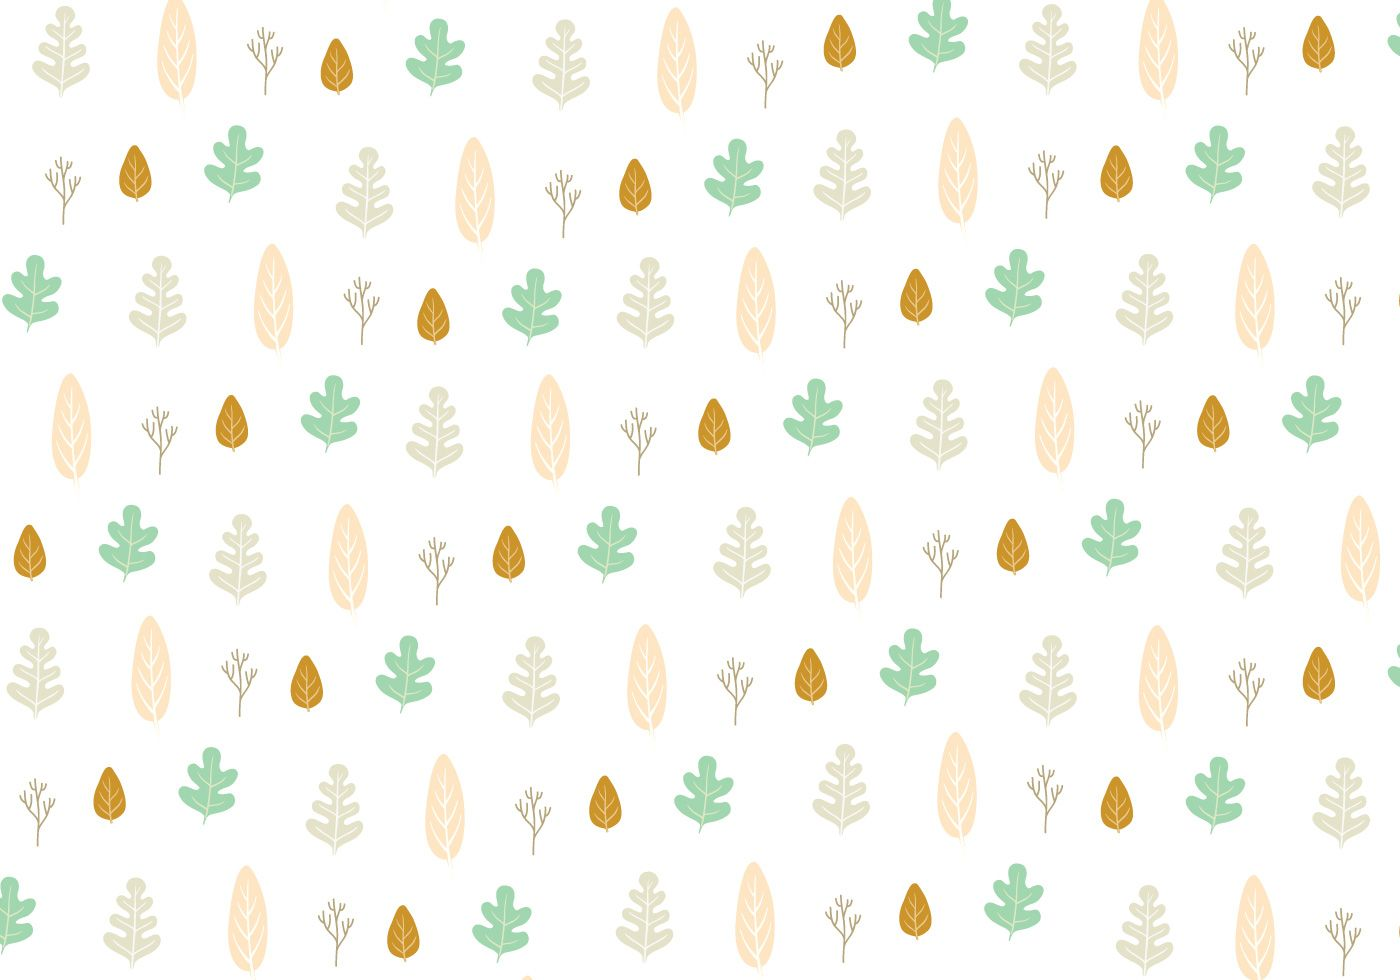 Seamless background with leaf pattern which can be used